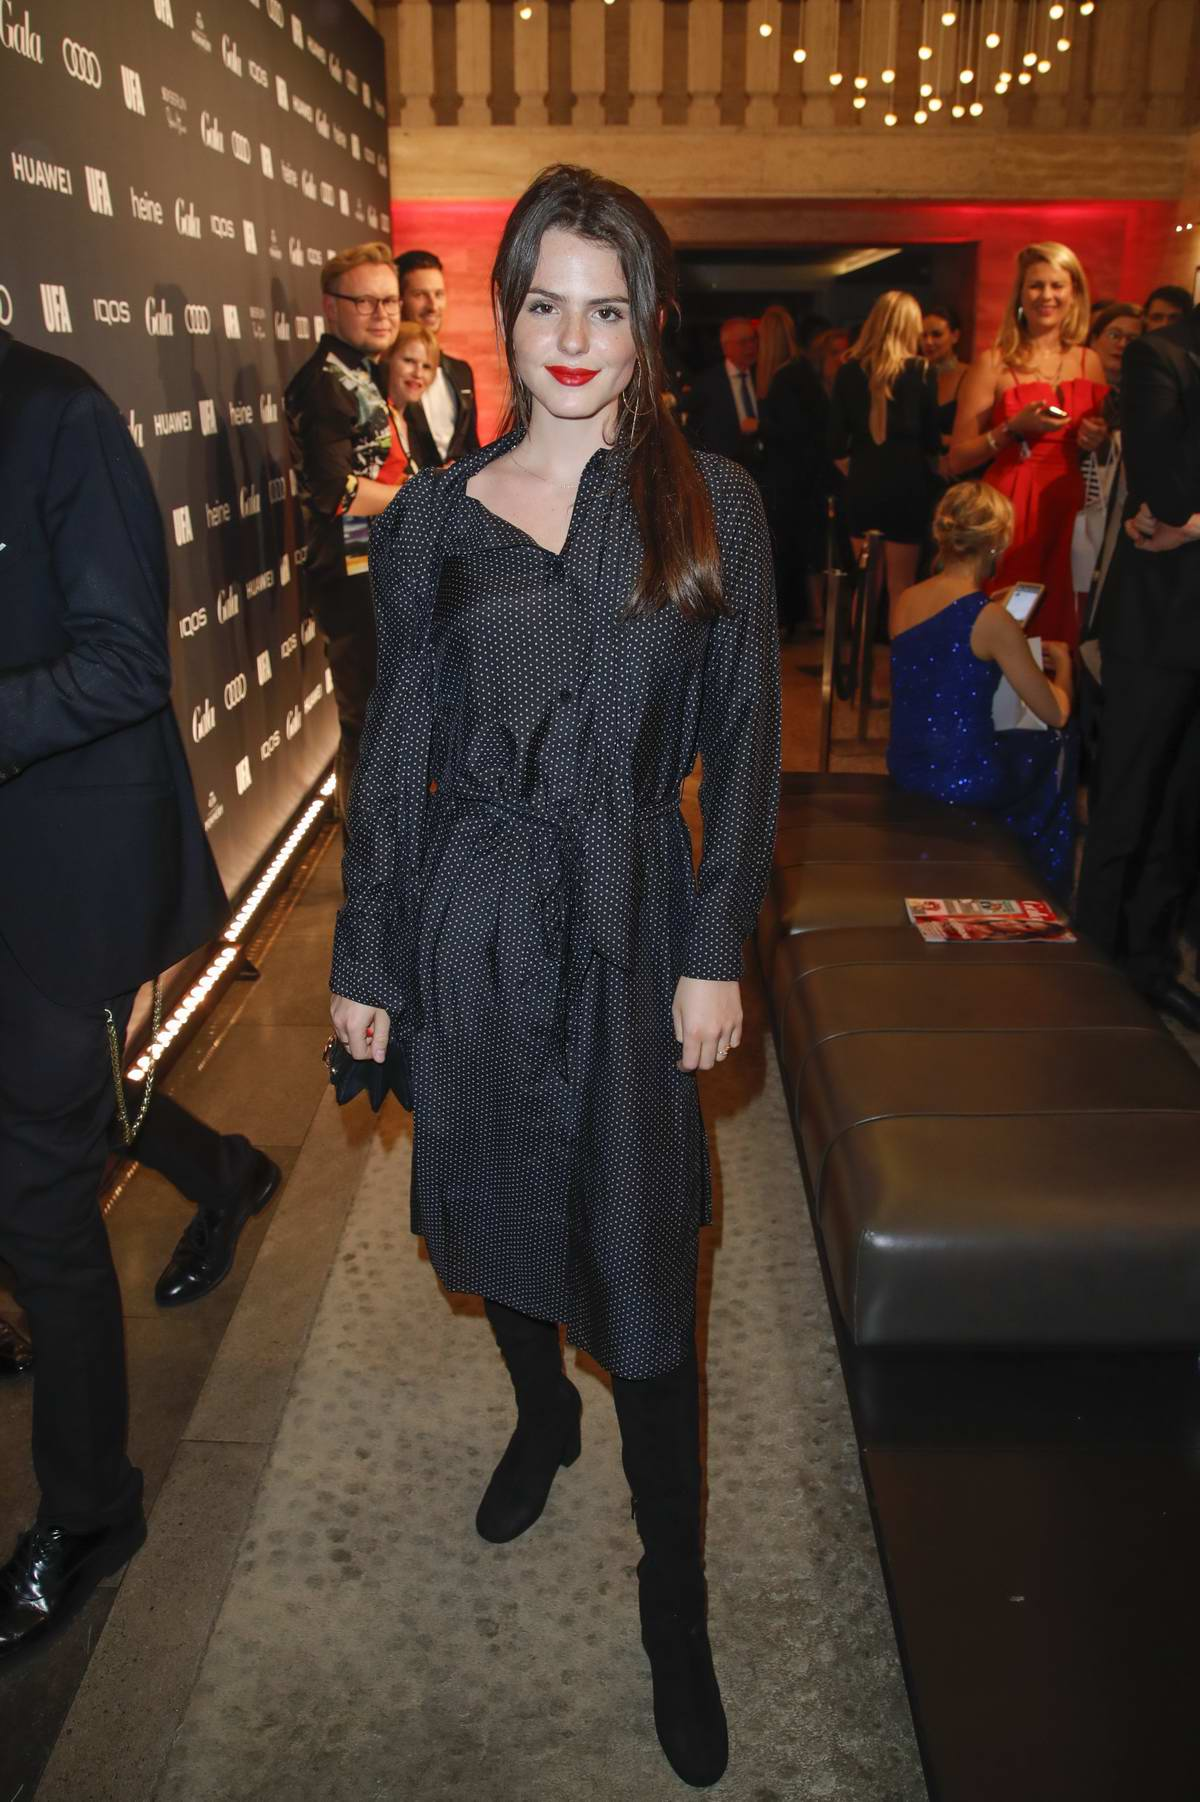 Ruby O. Fee attends the Opening Night by GALA & UFA during the 69th Berlinale International Film Festival in Berlin, Germany